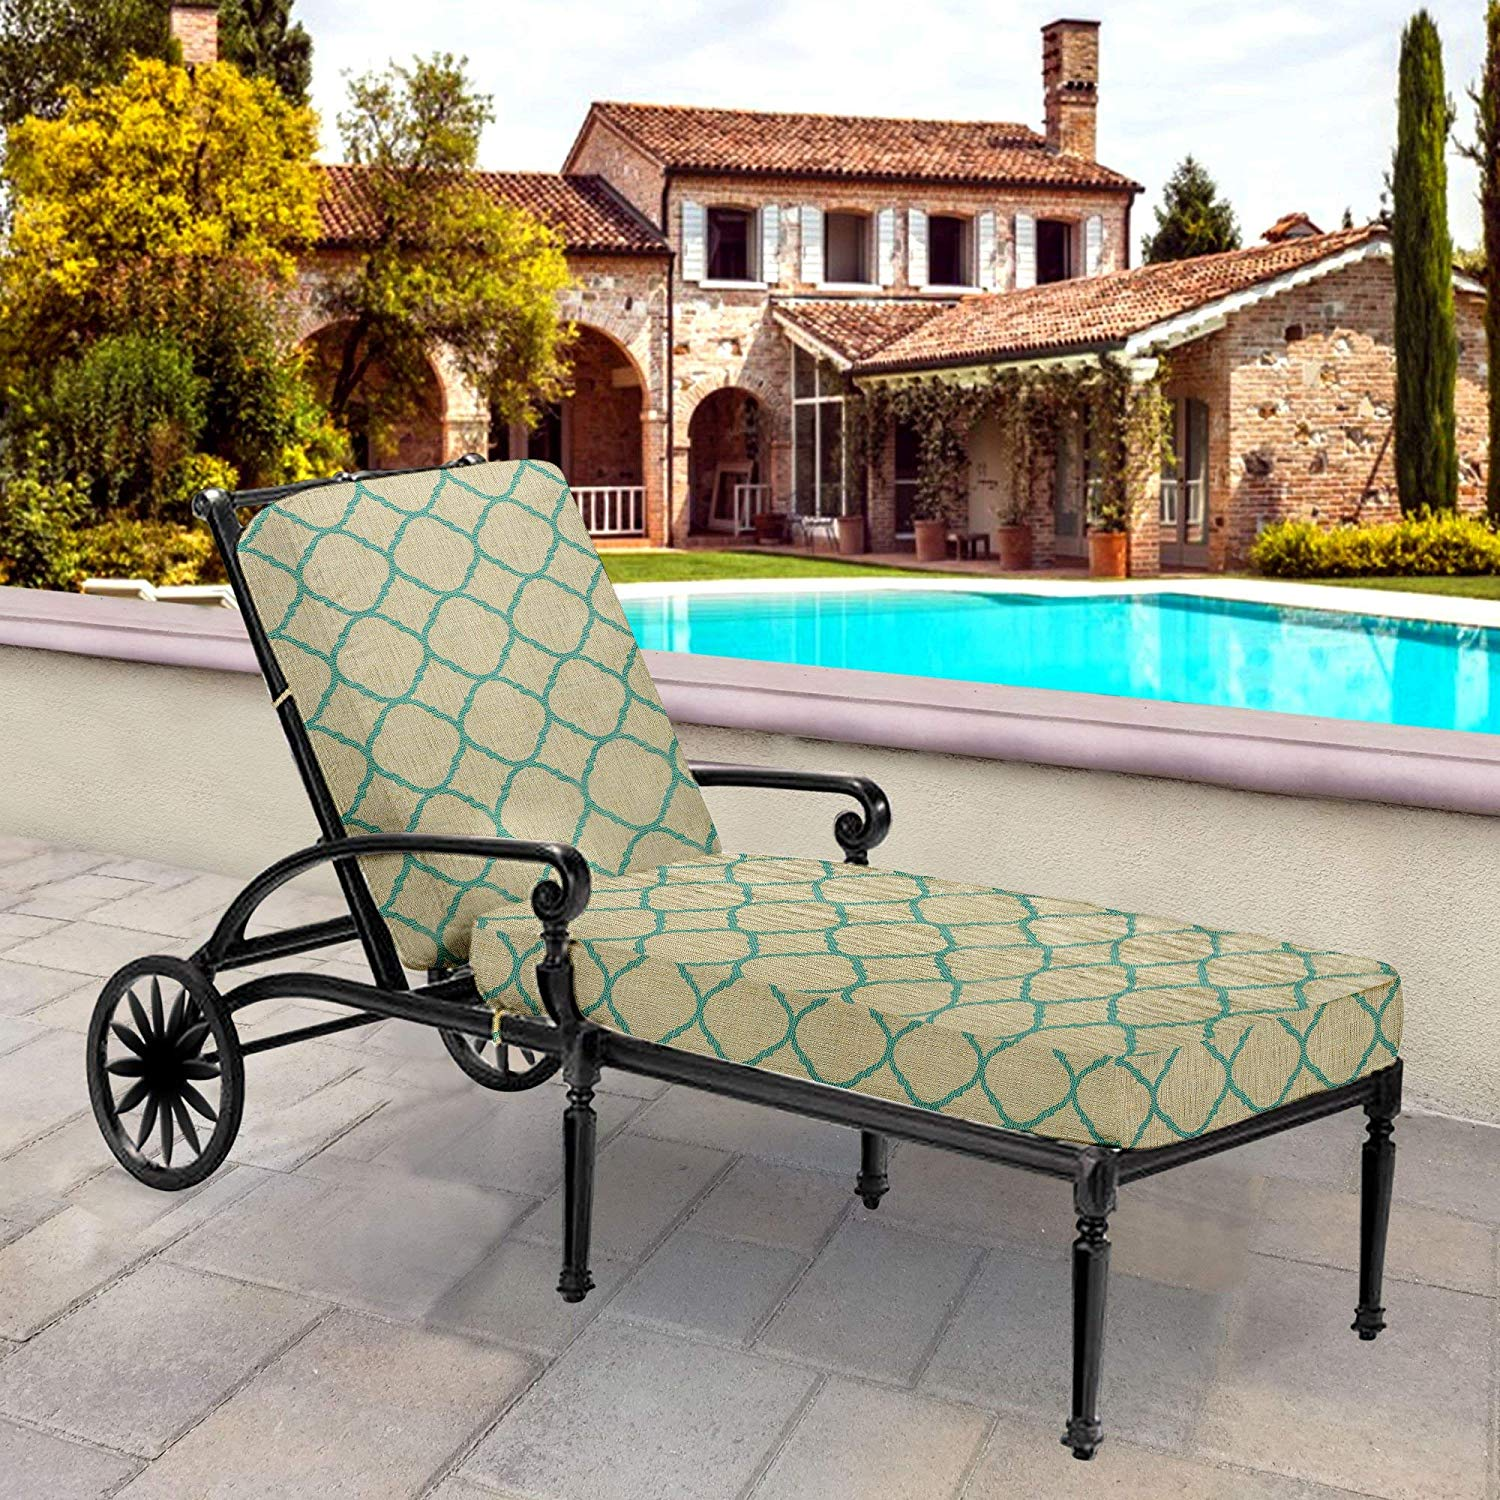 Thomas Collection Outdoor Cushions, Emerald Green Taupe Patio Cushions, One Outdoor Chaise Lounge Seat & Back Cushion, Made in US, 13161